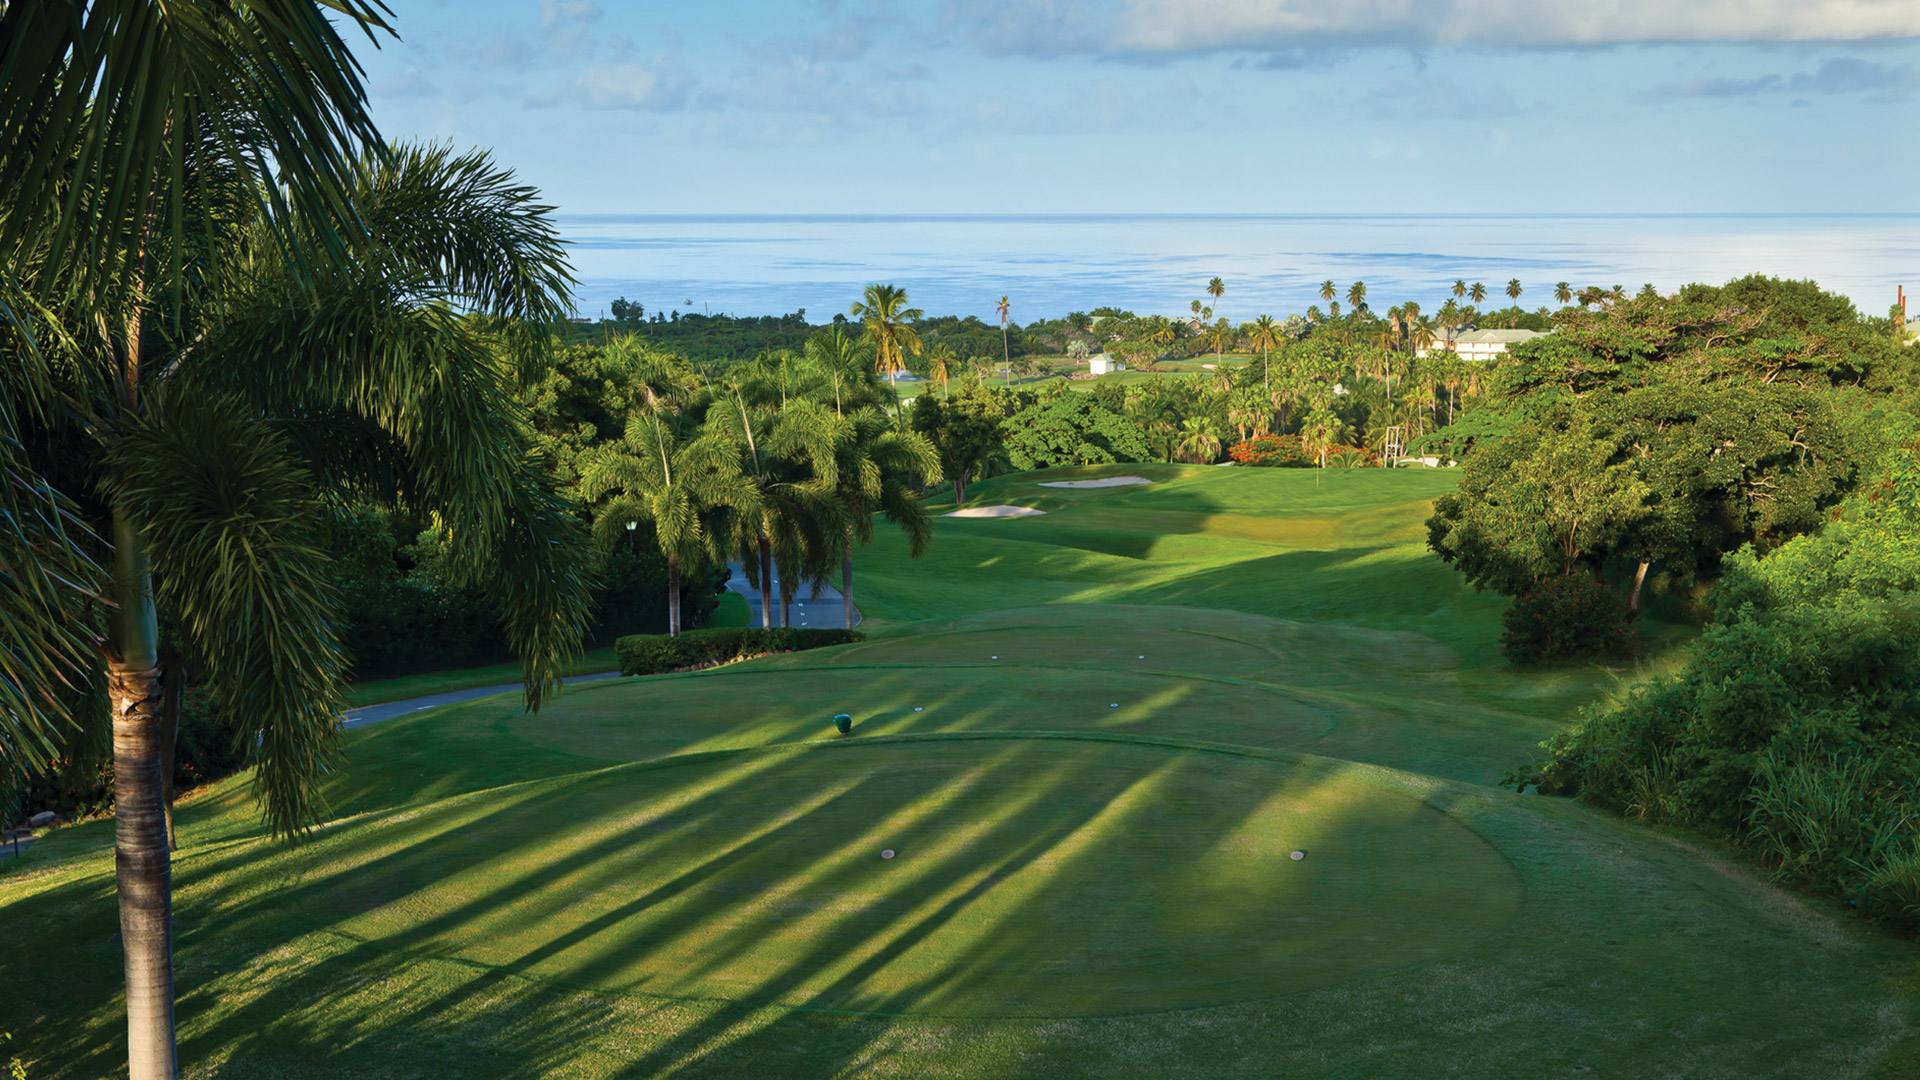 Luxury Real Estate Marketing | Four Seasons Resort Estates | Golf Course Panorama